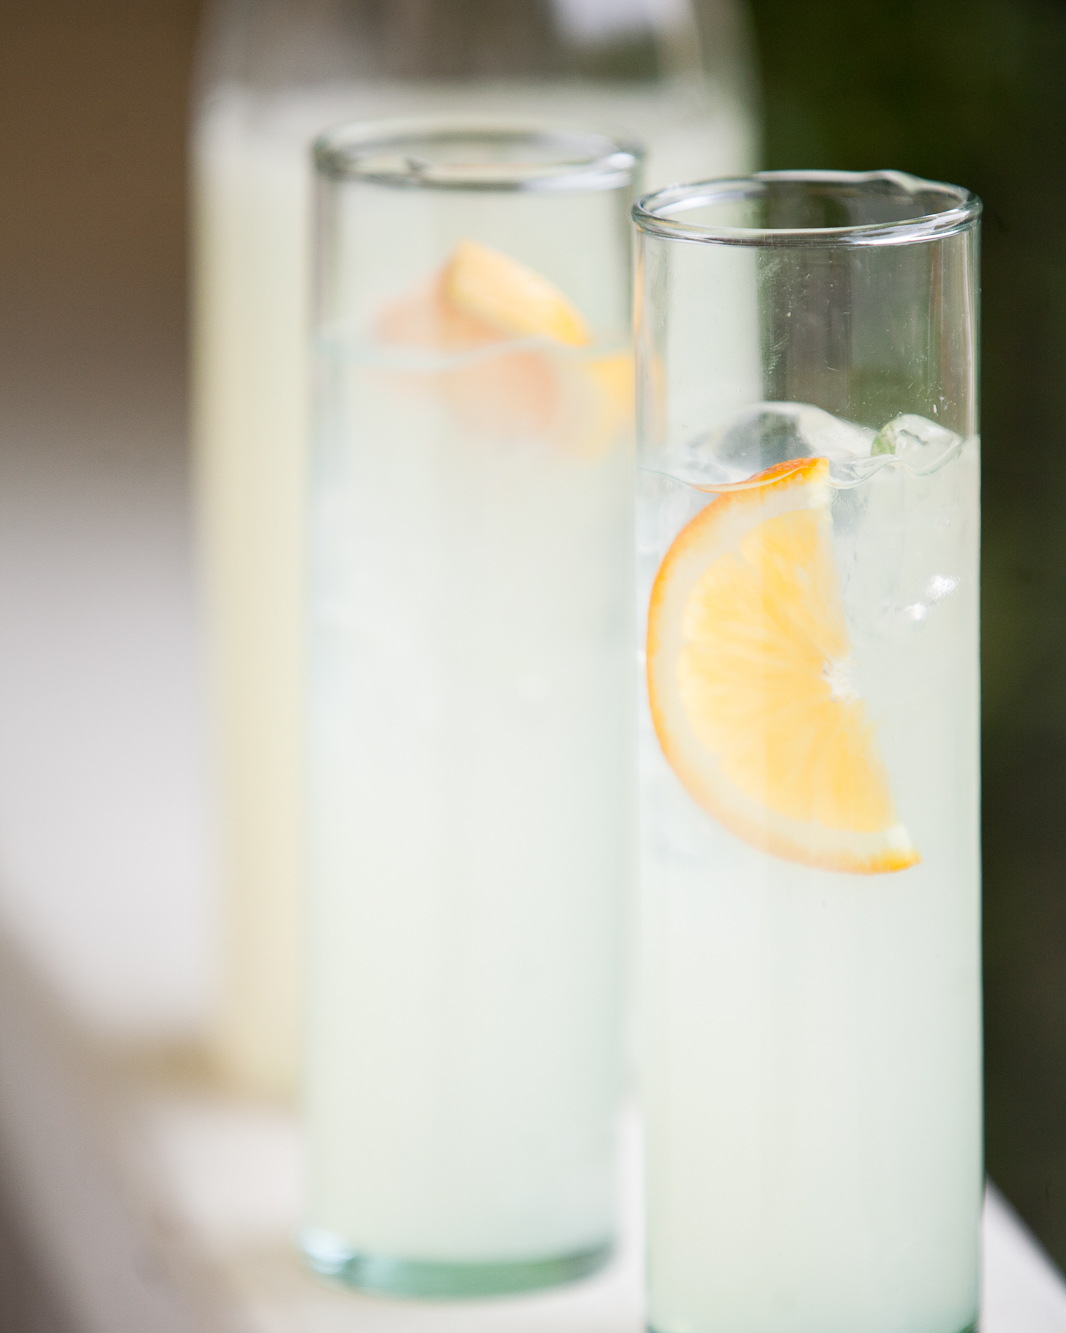 Two glasses of lemonade with orange slices in front of a carafe.